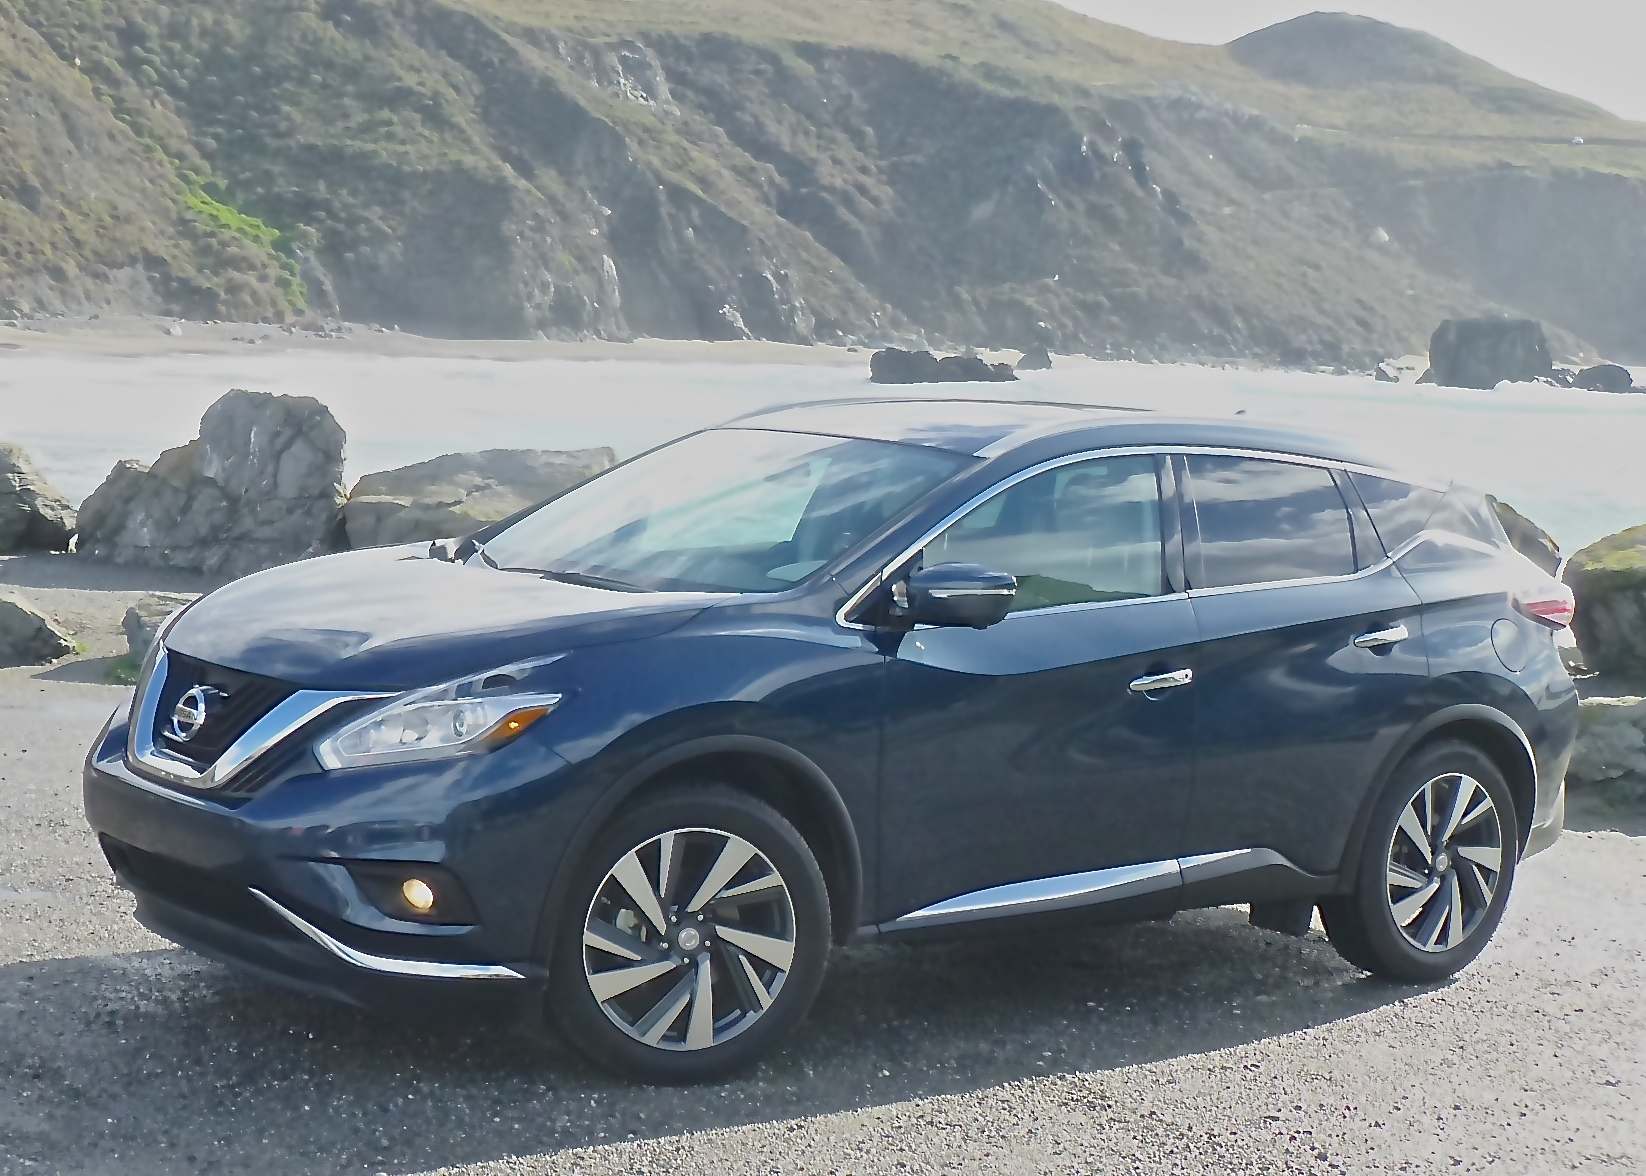 For 2015, Murano gets complete interior and exterior makeover.